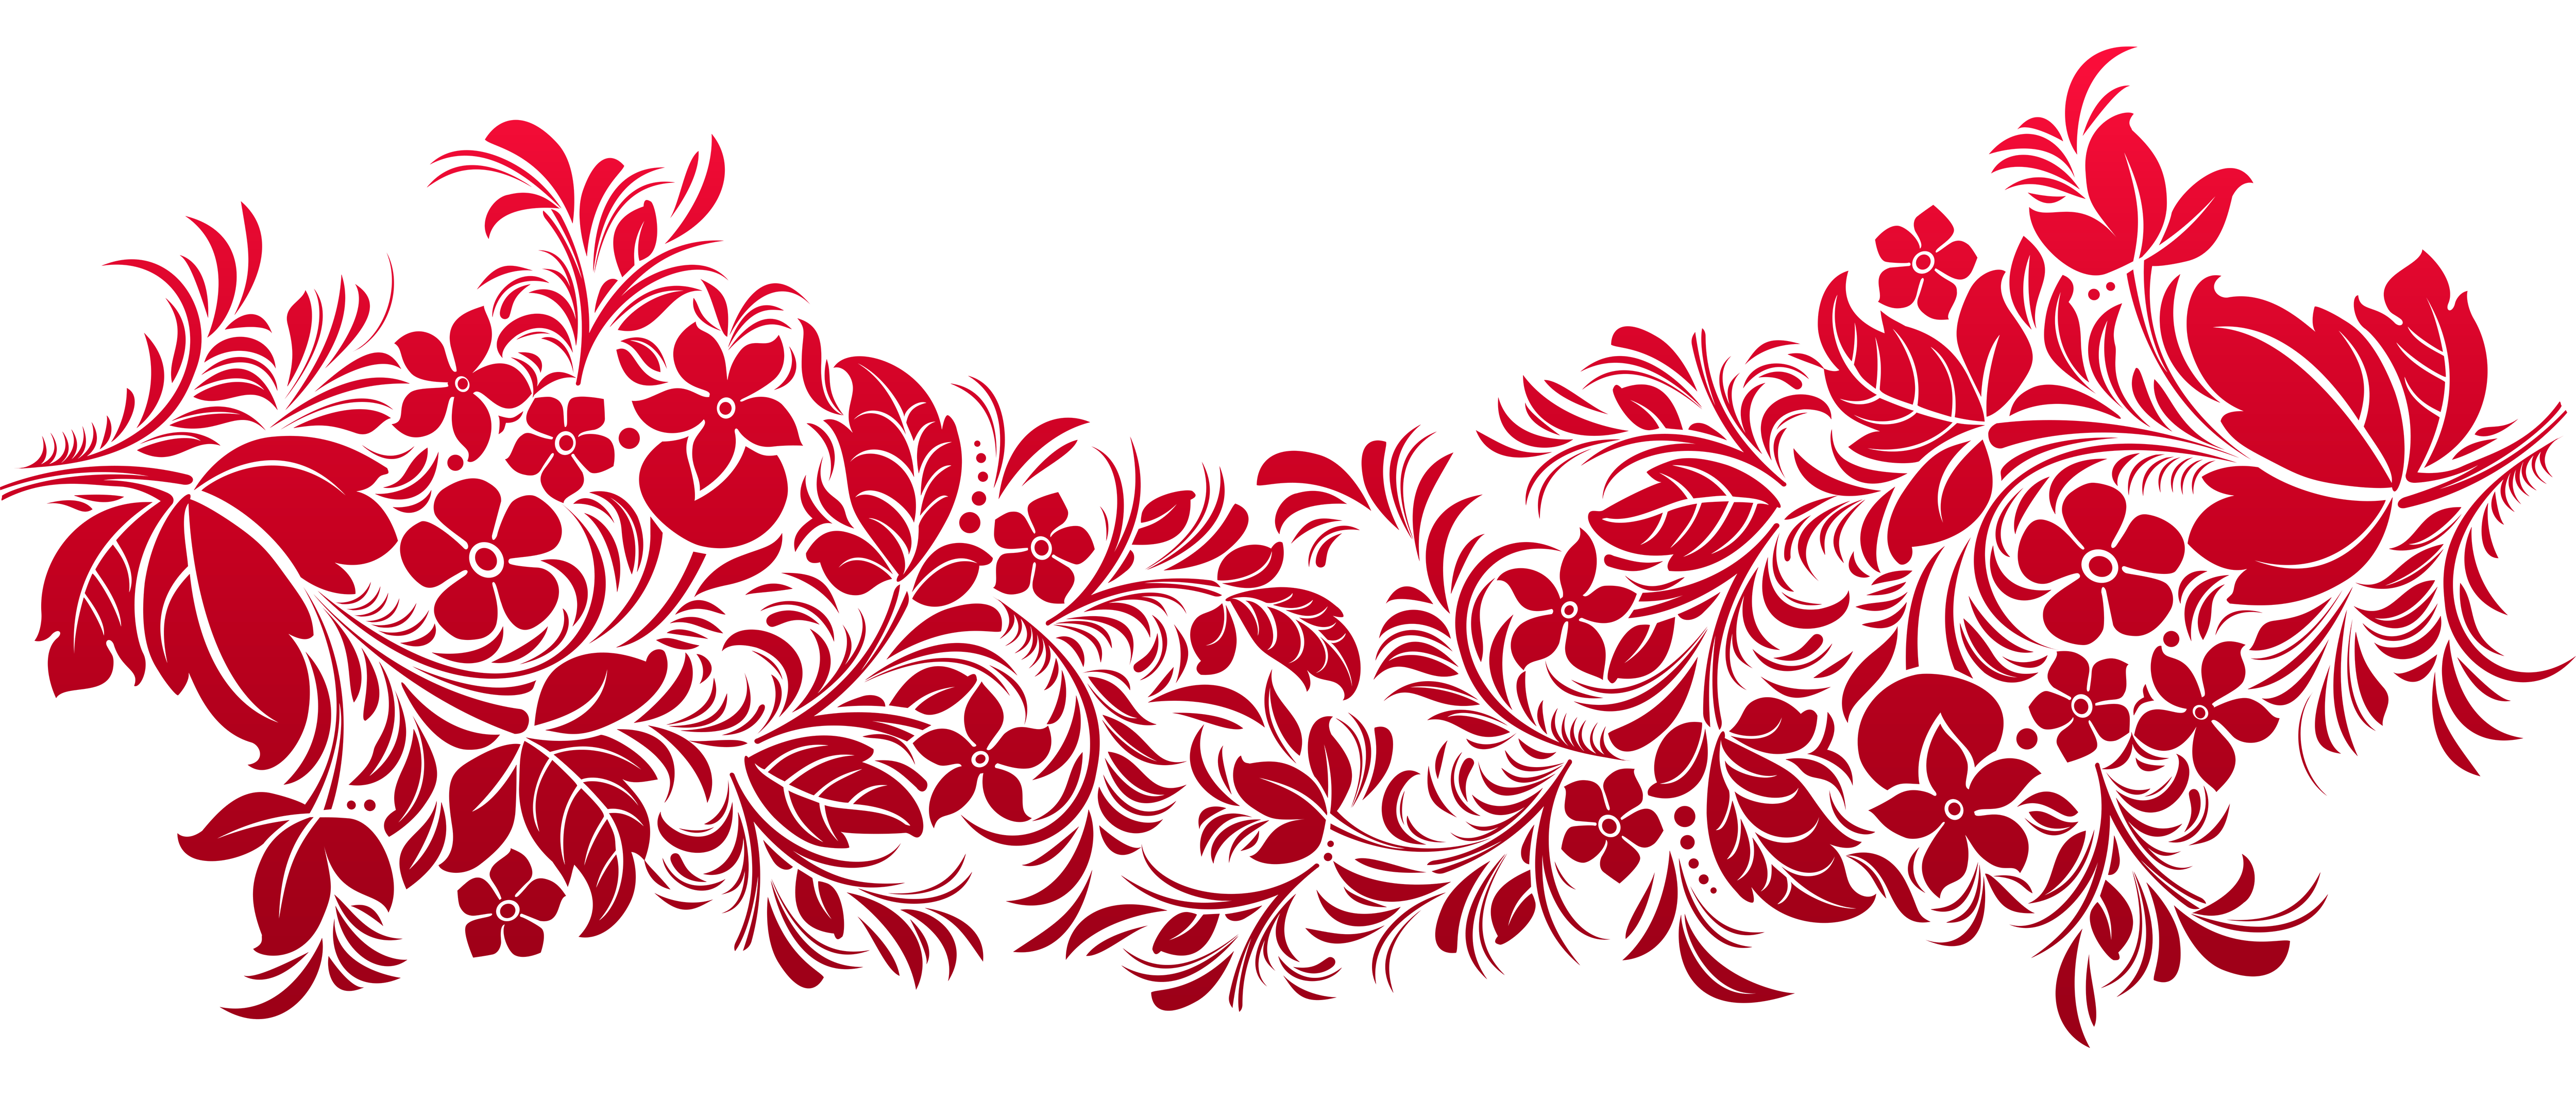 Red Transparent Decoration PNG Clipart.